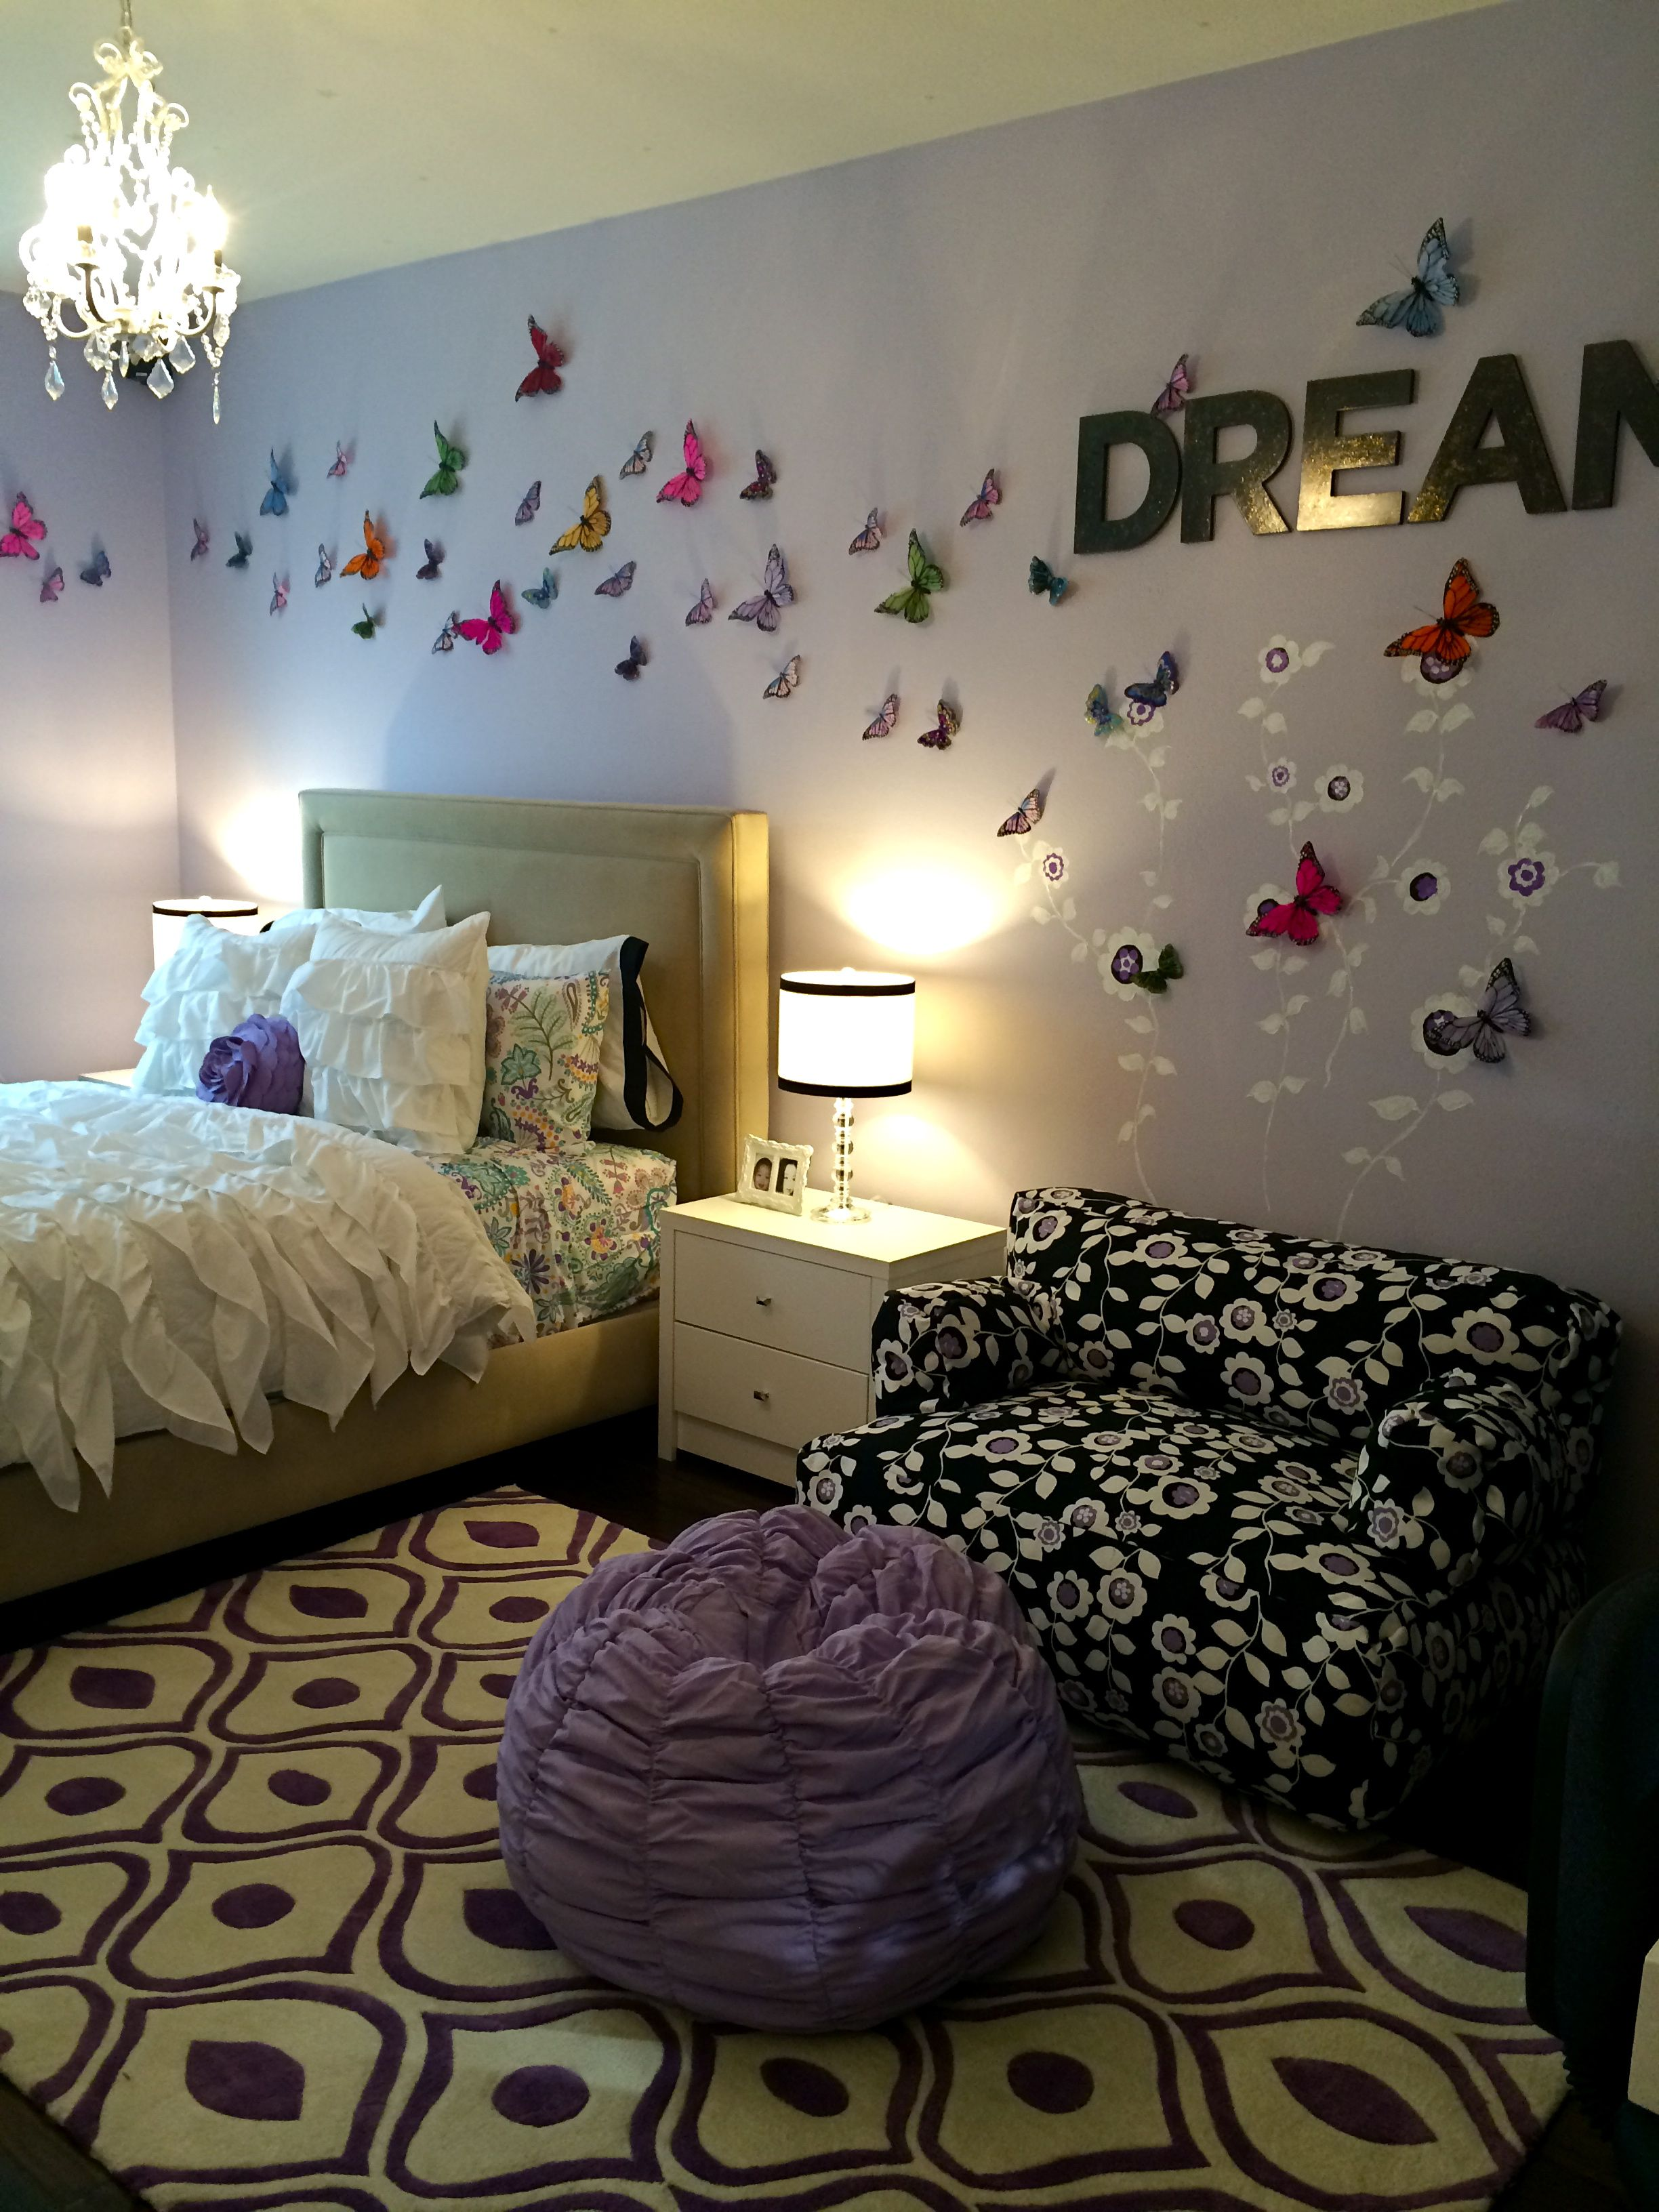 A 10 Year Old Girls Dream Bedroom Contact Www 4g Designs Com To